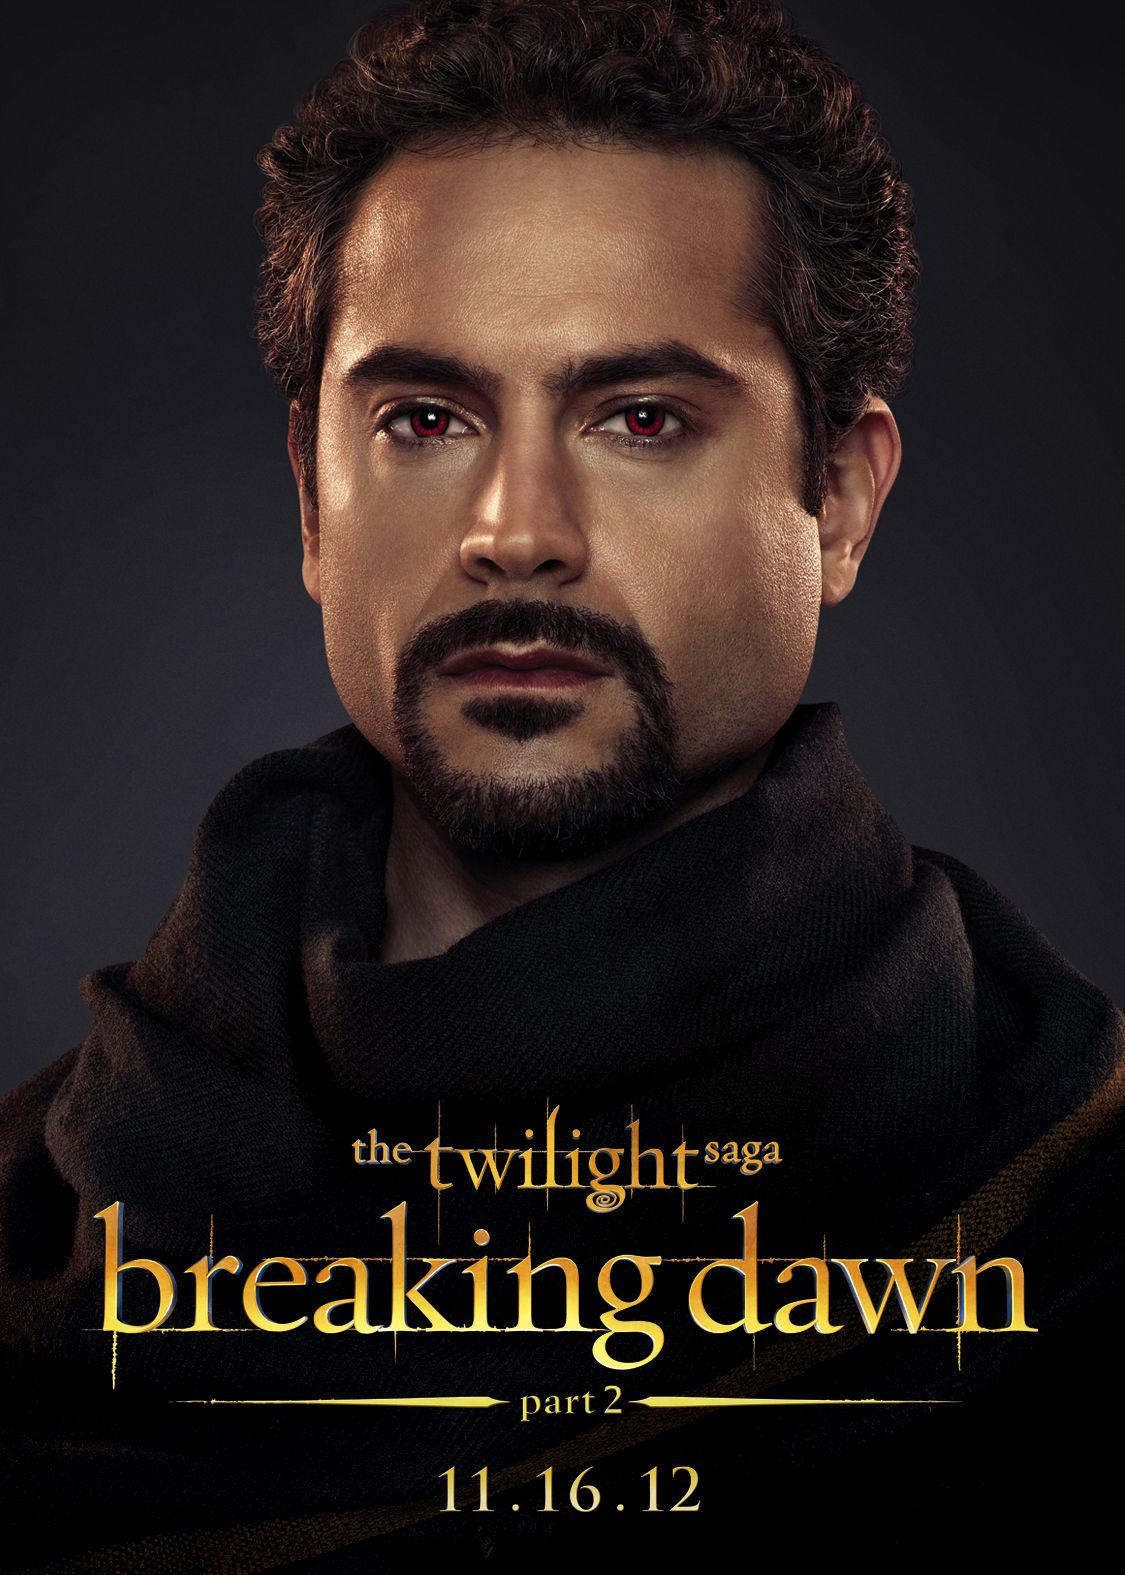 The Twilight Saga Breaking Dawn Part 2 Reveals New Images Of